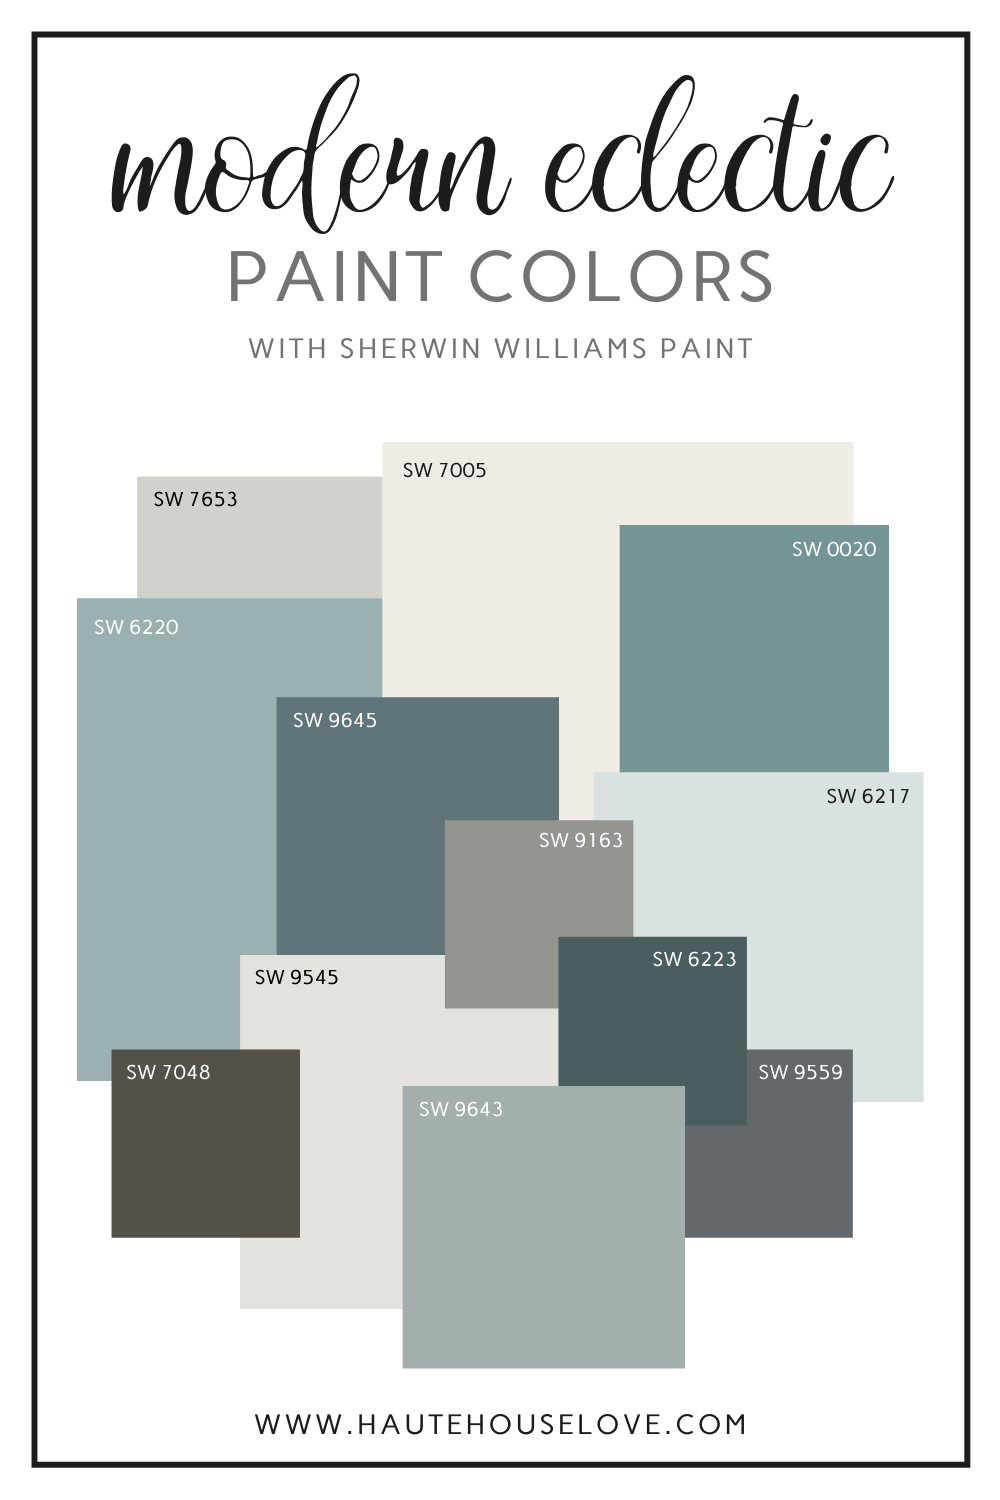 Paint Colors In Our Modern Eclectic Home Haute House Love